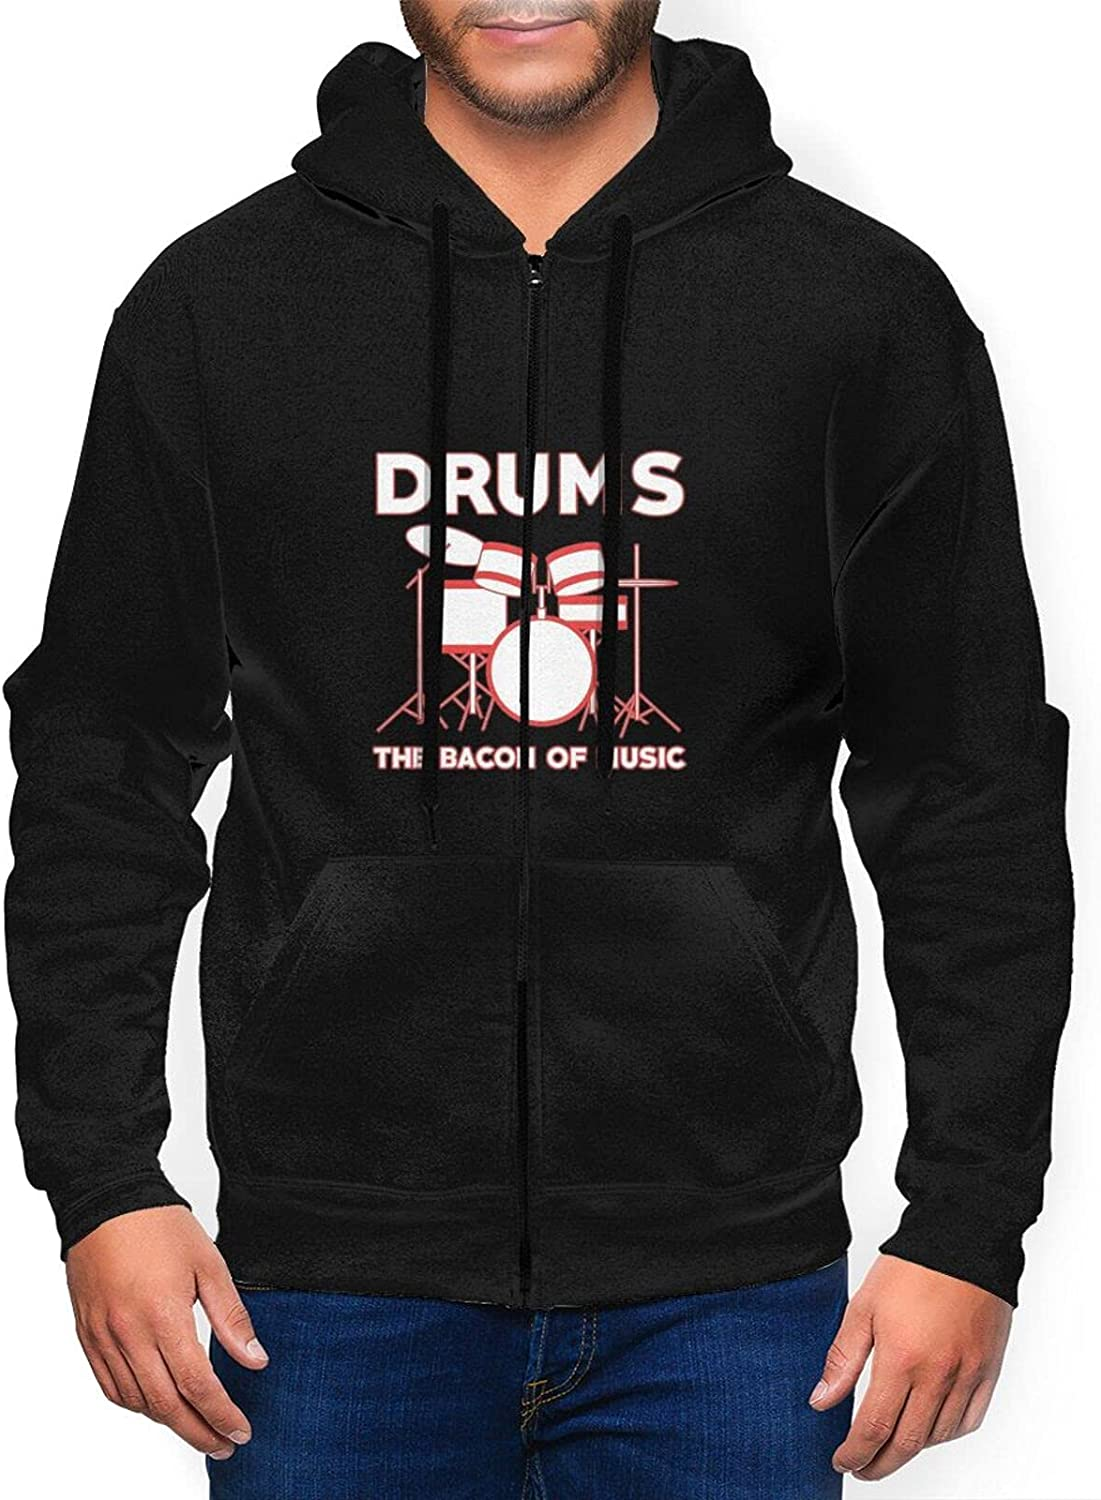 Ruporch Drums-are-The-Bacon-Music Some reservation low-pricing Men's Hoodie H Zip Full Active